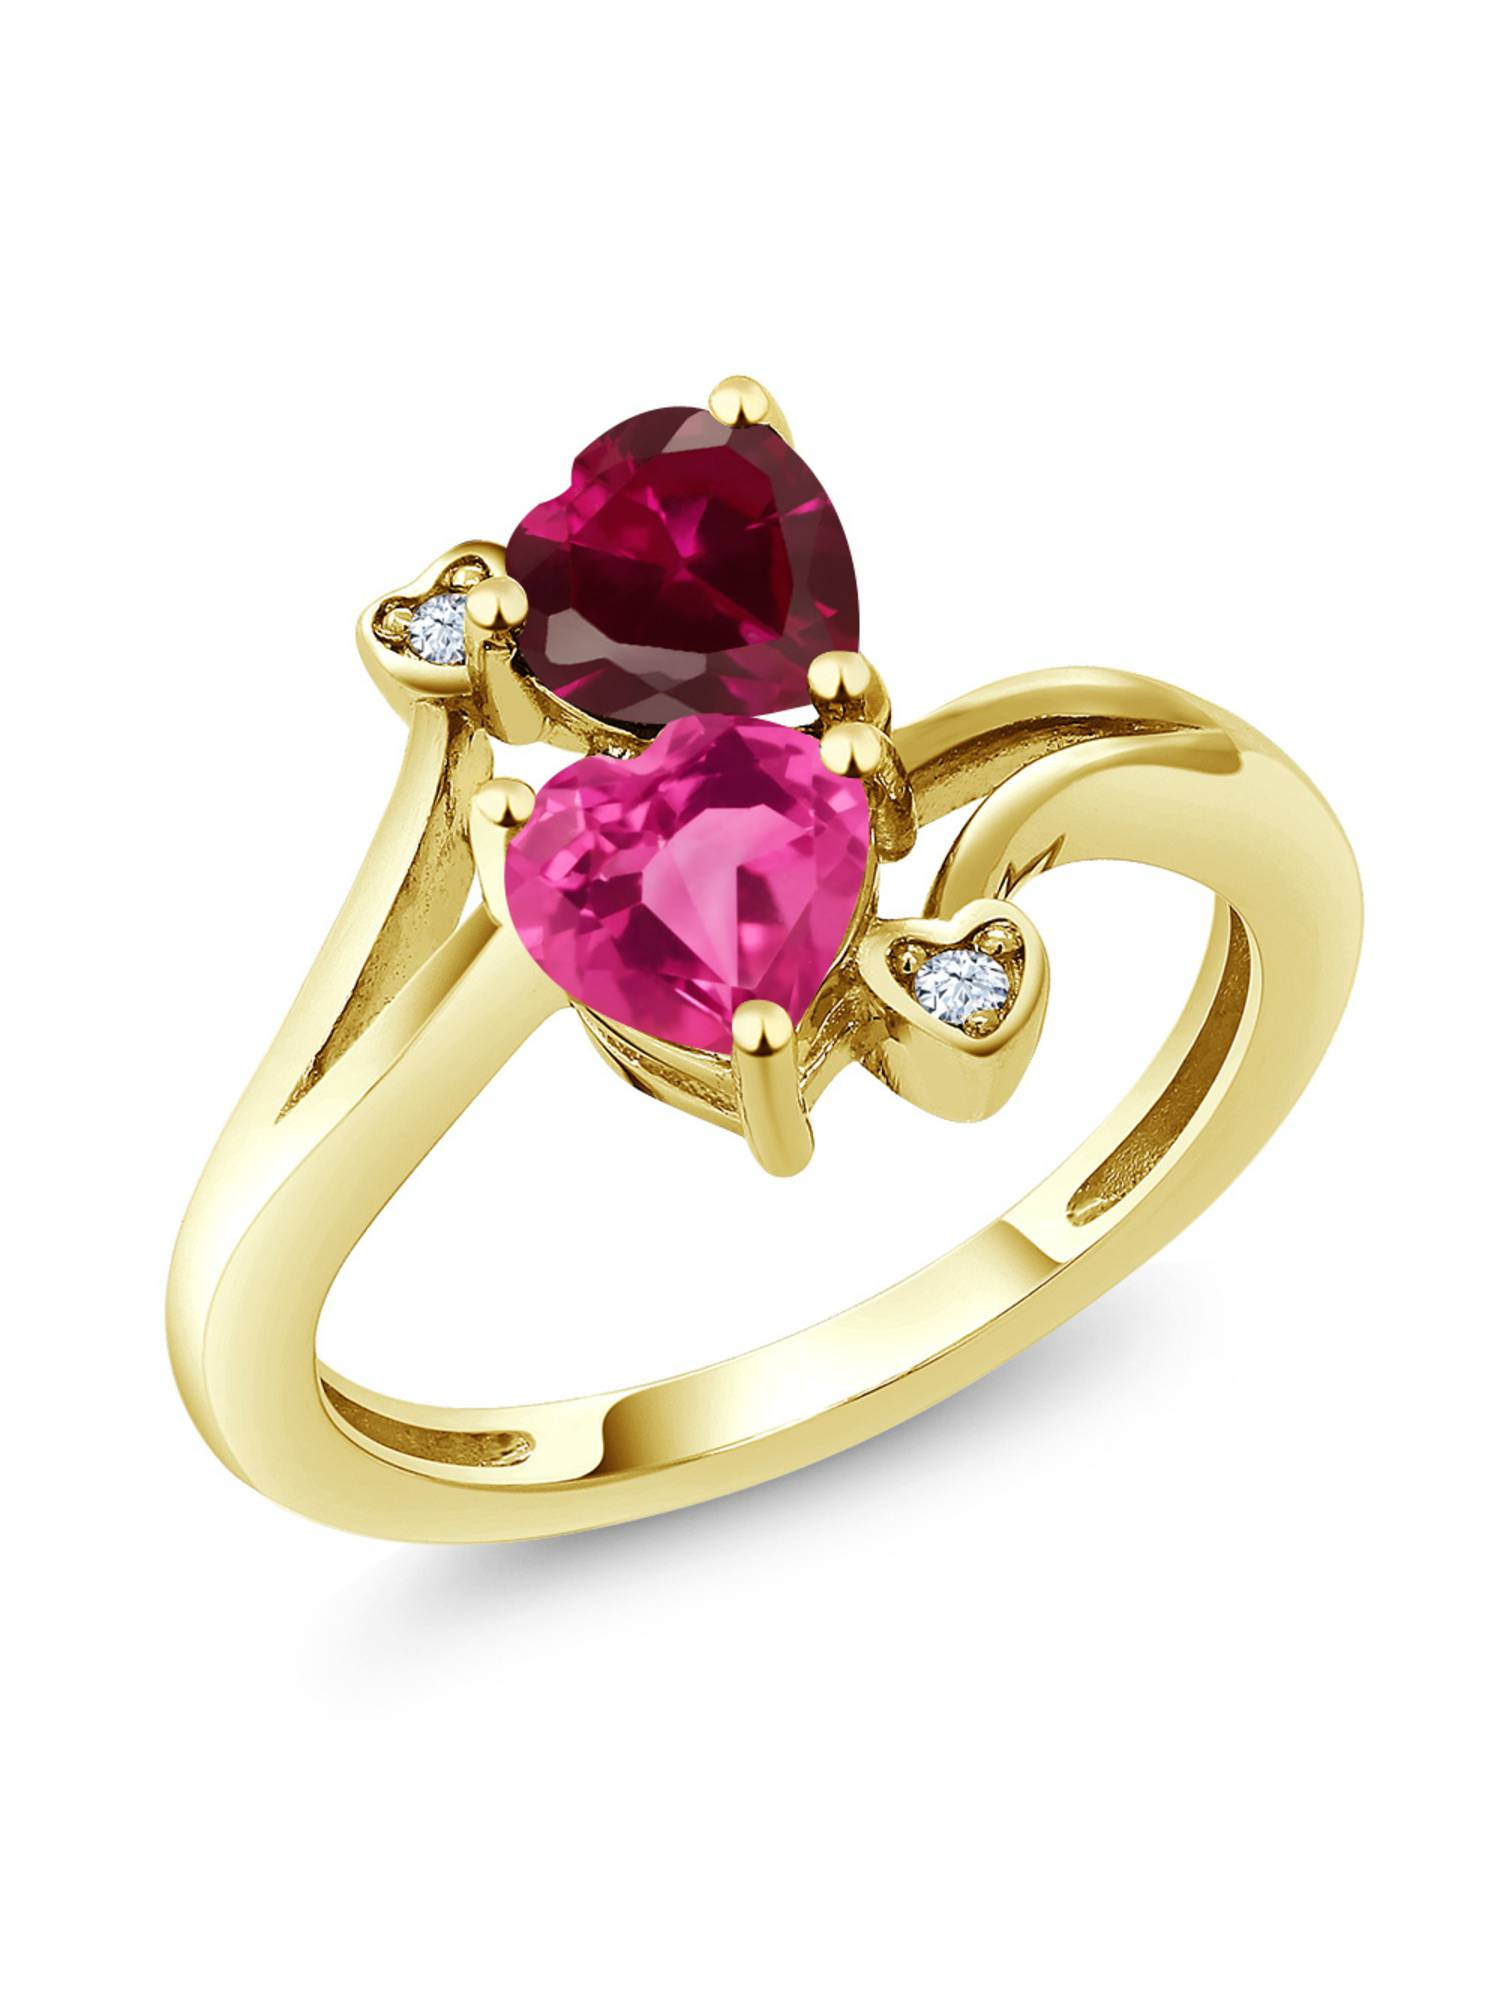 1.79 Ct Heart Shape Pink Created Sapphire Red Created Ruby 10K Yellow Gold Ring by